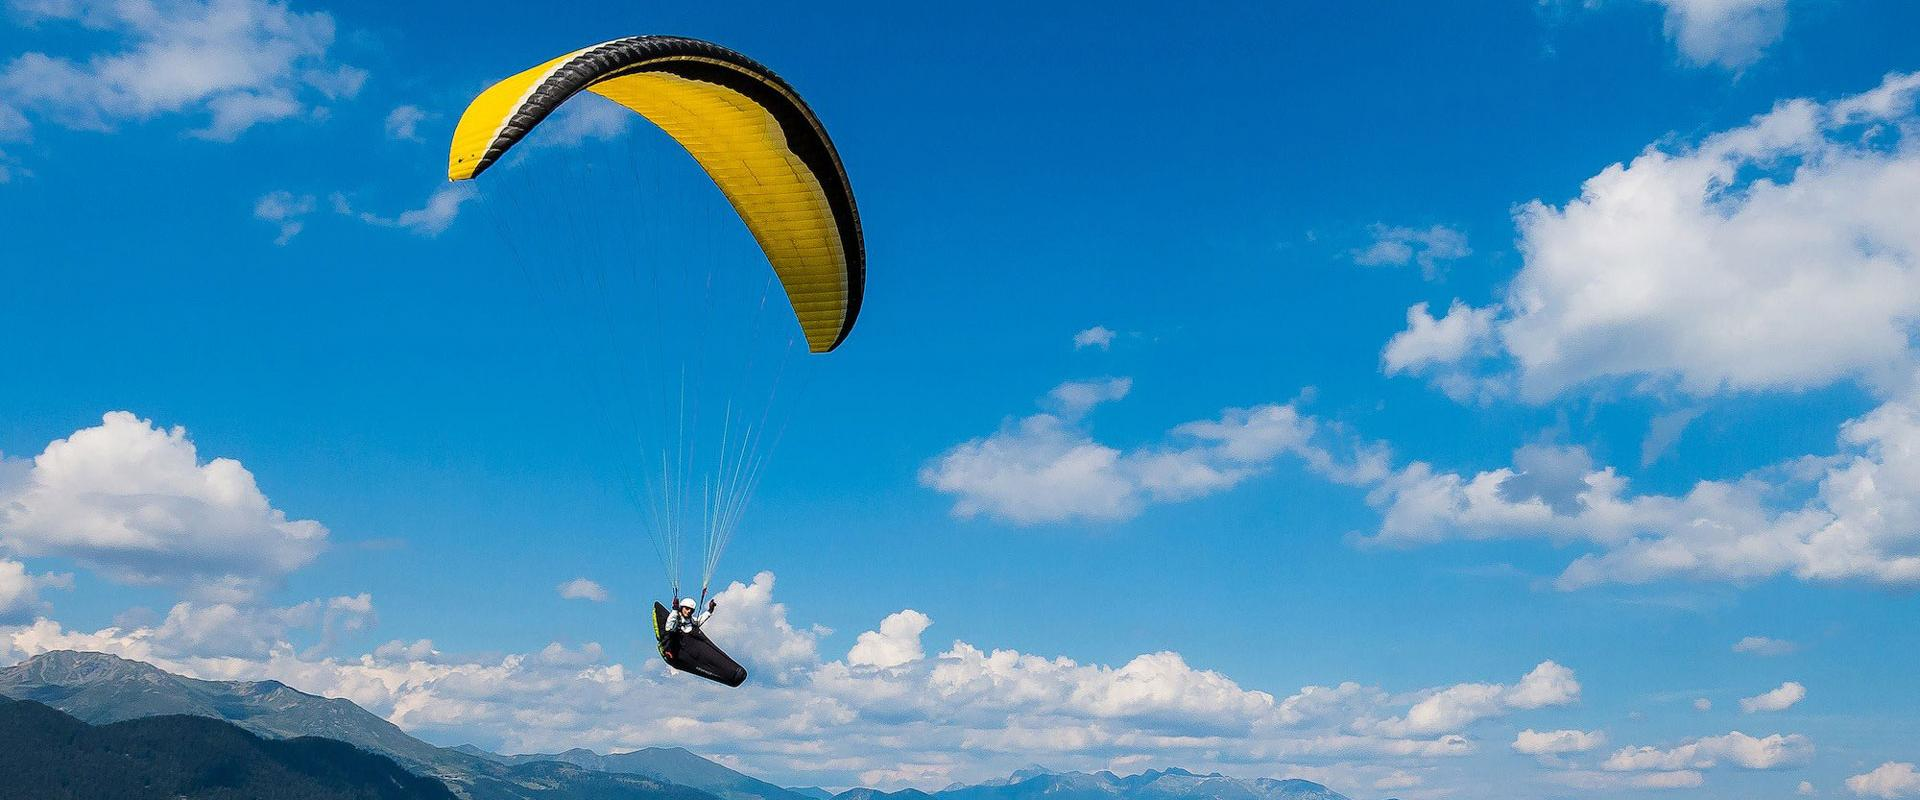 paragliding tandem experience on Sibillini Mountains